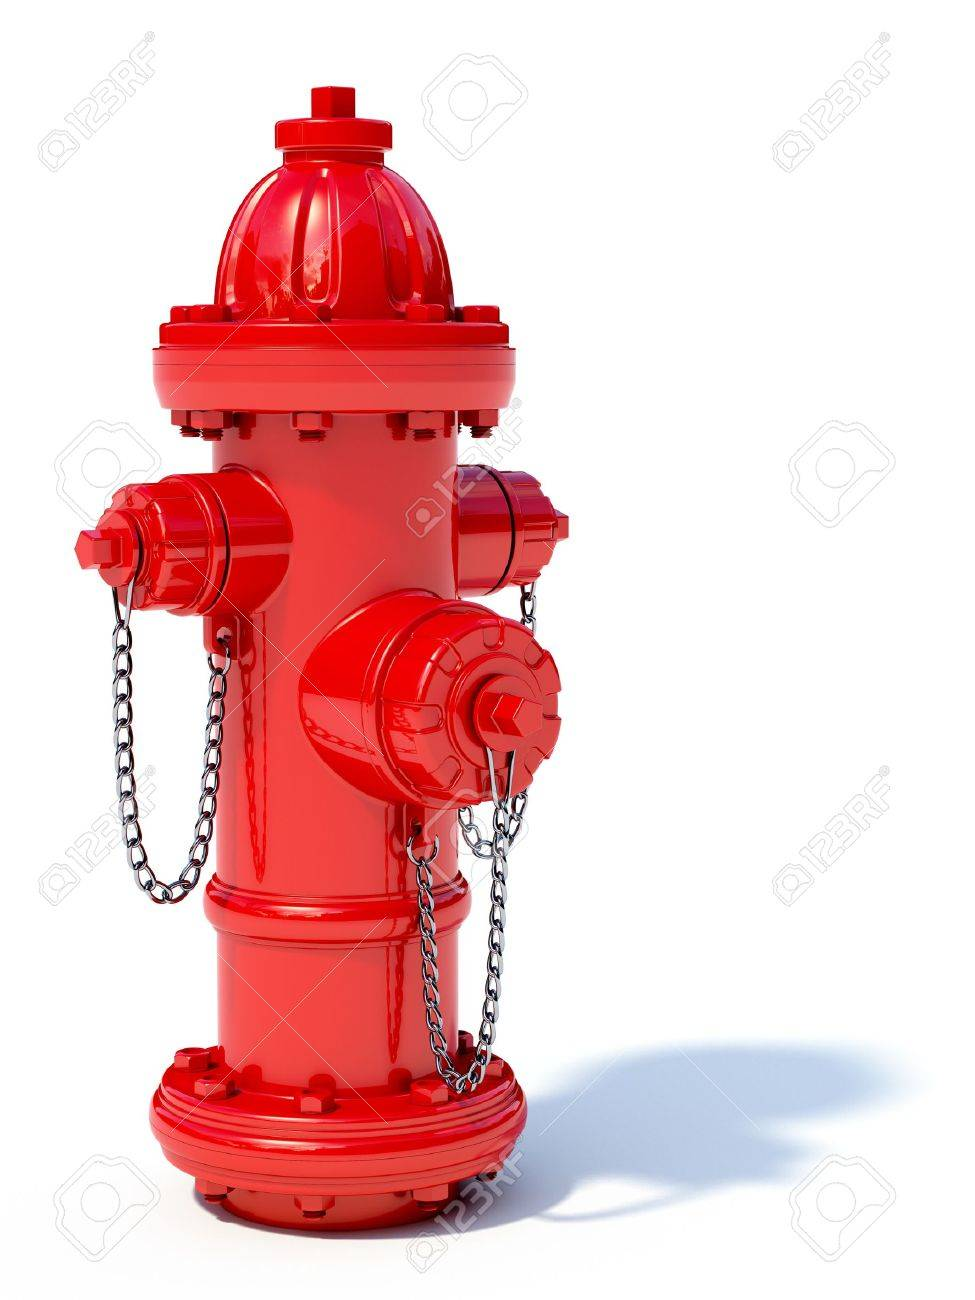 hight resolution of 3d illustration of red fire hydrant isolated on white background stock photo